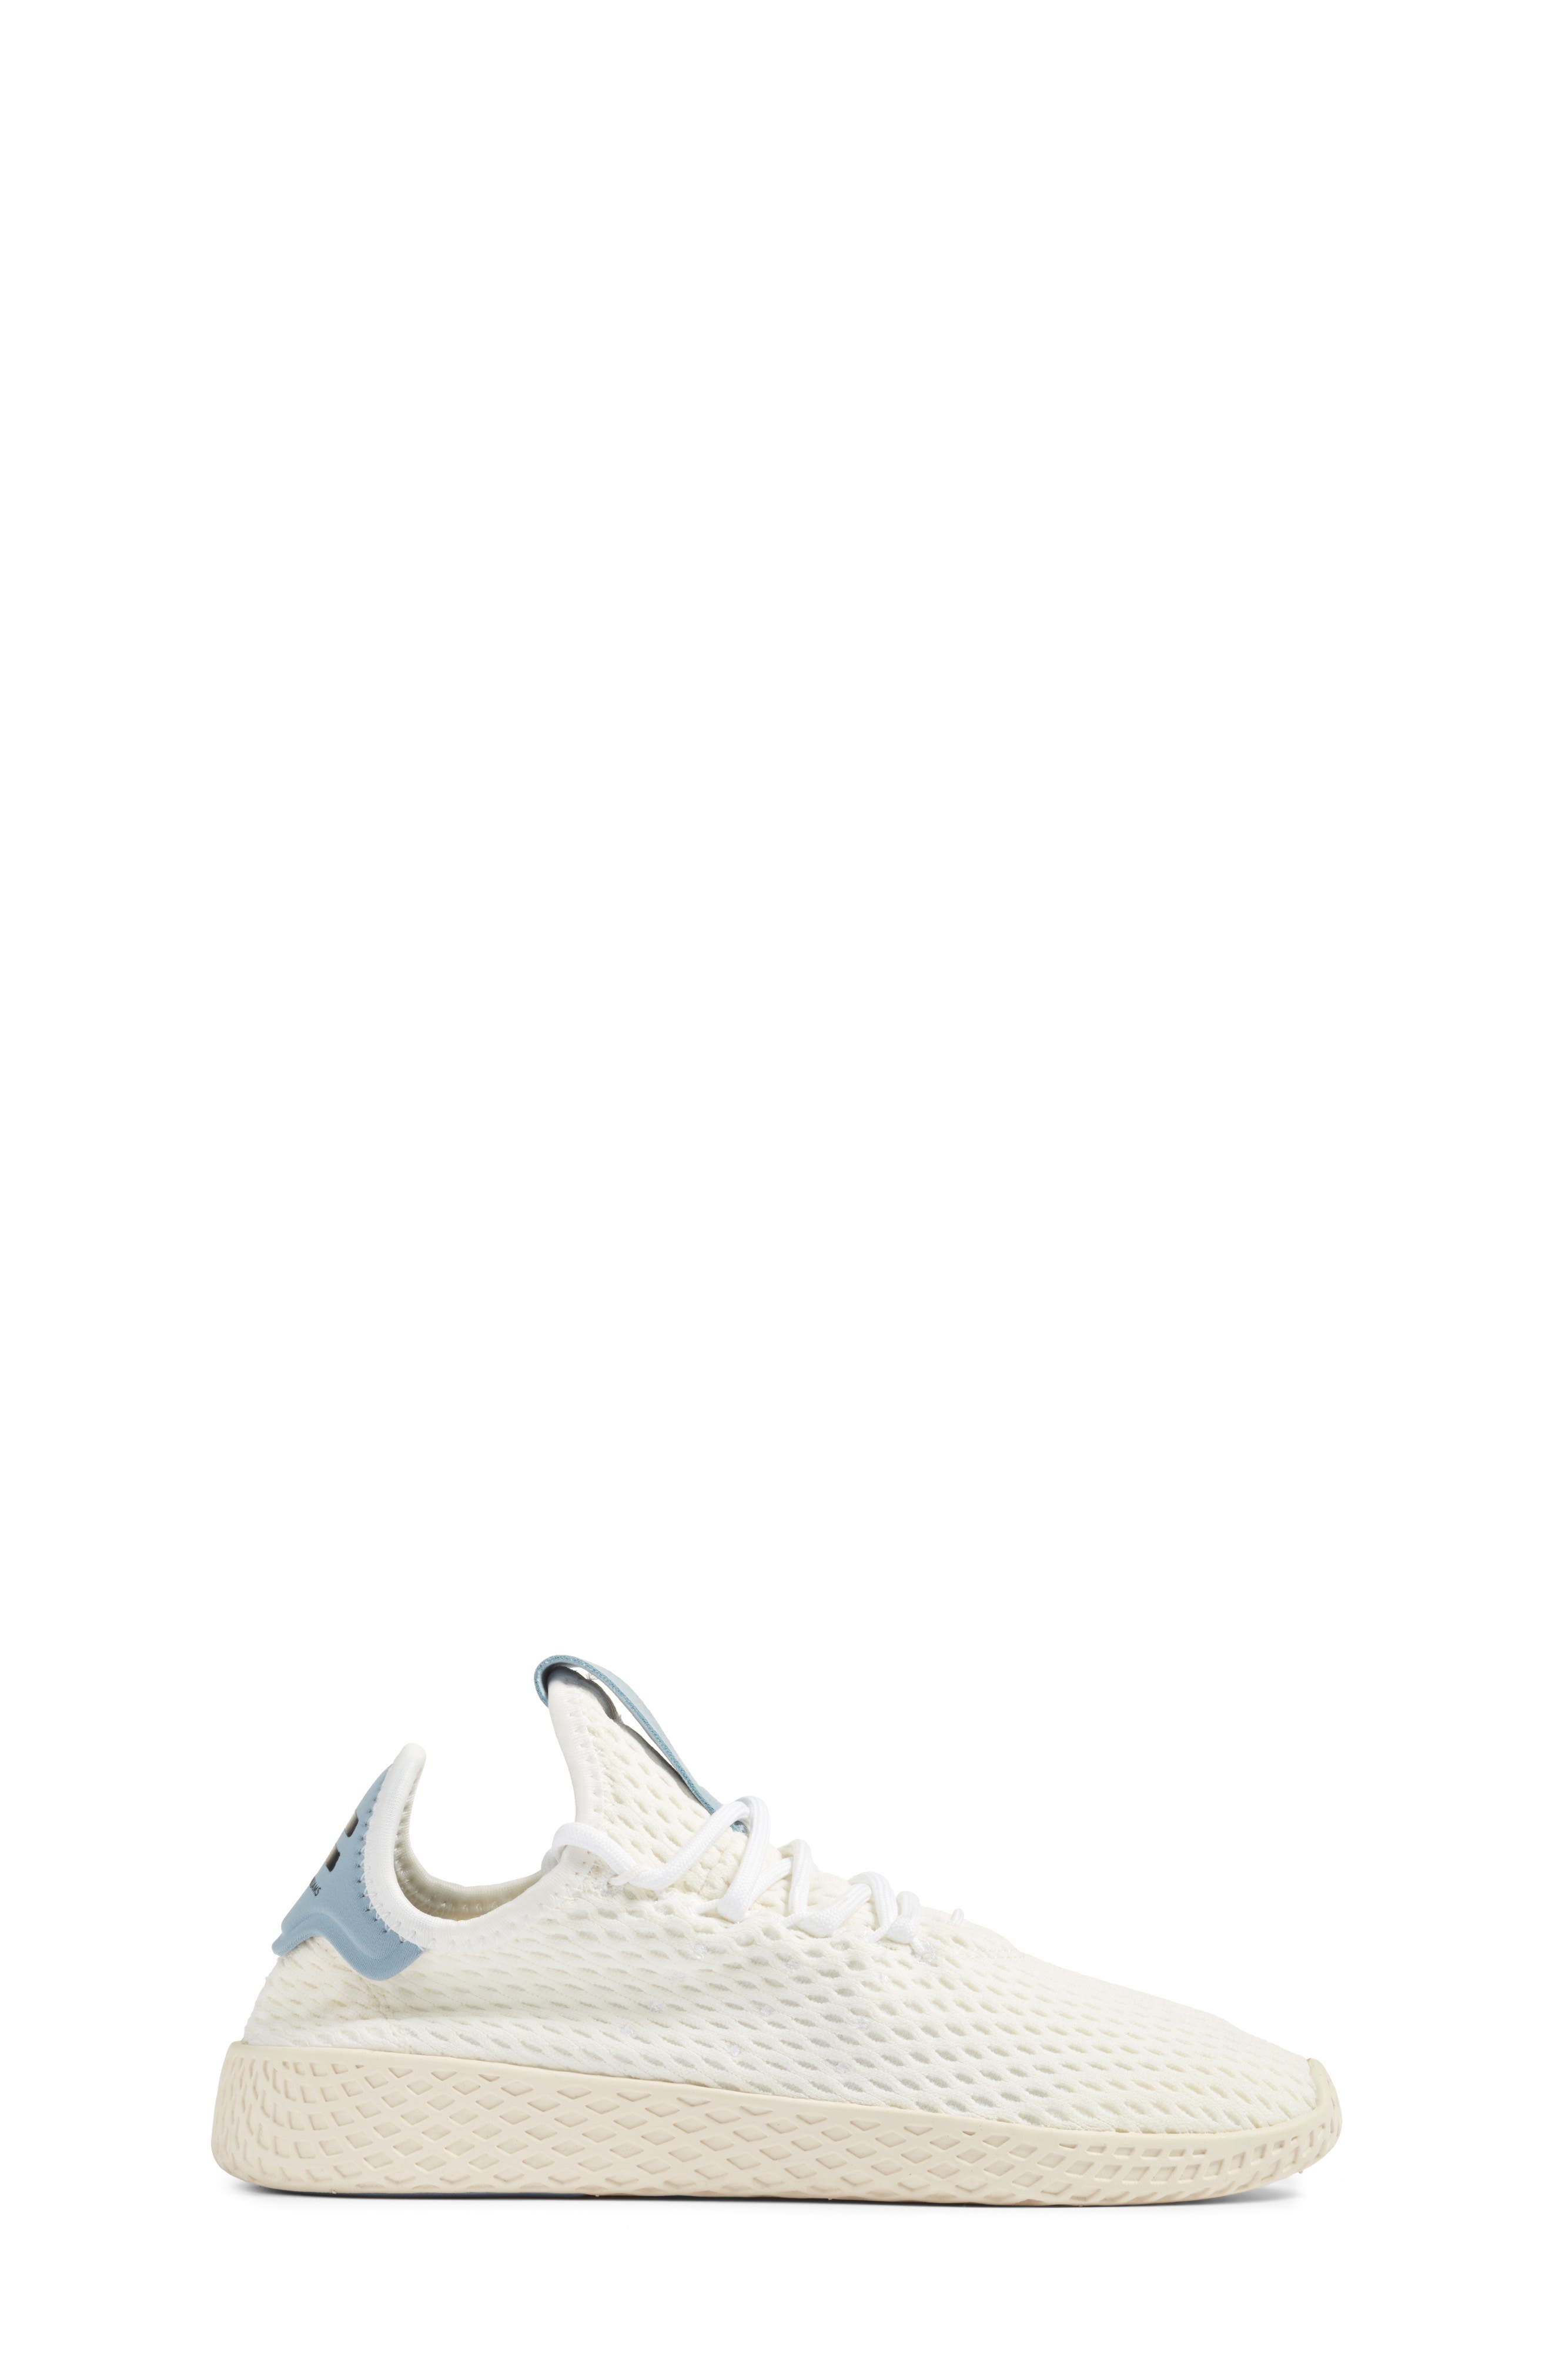 Originals x Pharrell Williams The Summers Mesh Sneaker,                             Alternate thumbnail 3, color,                             Footwear White/ Tactile Blue